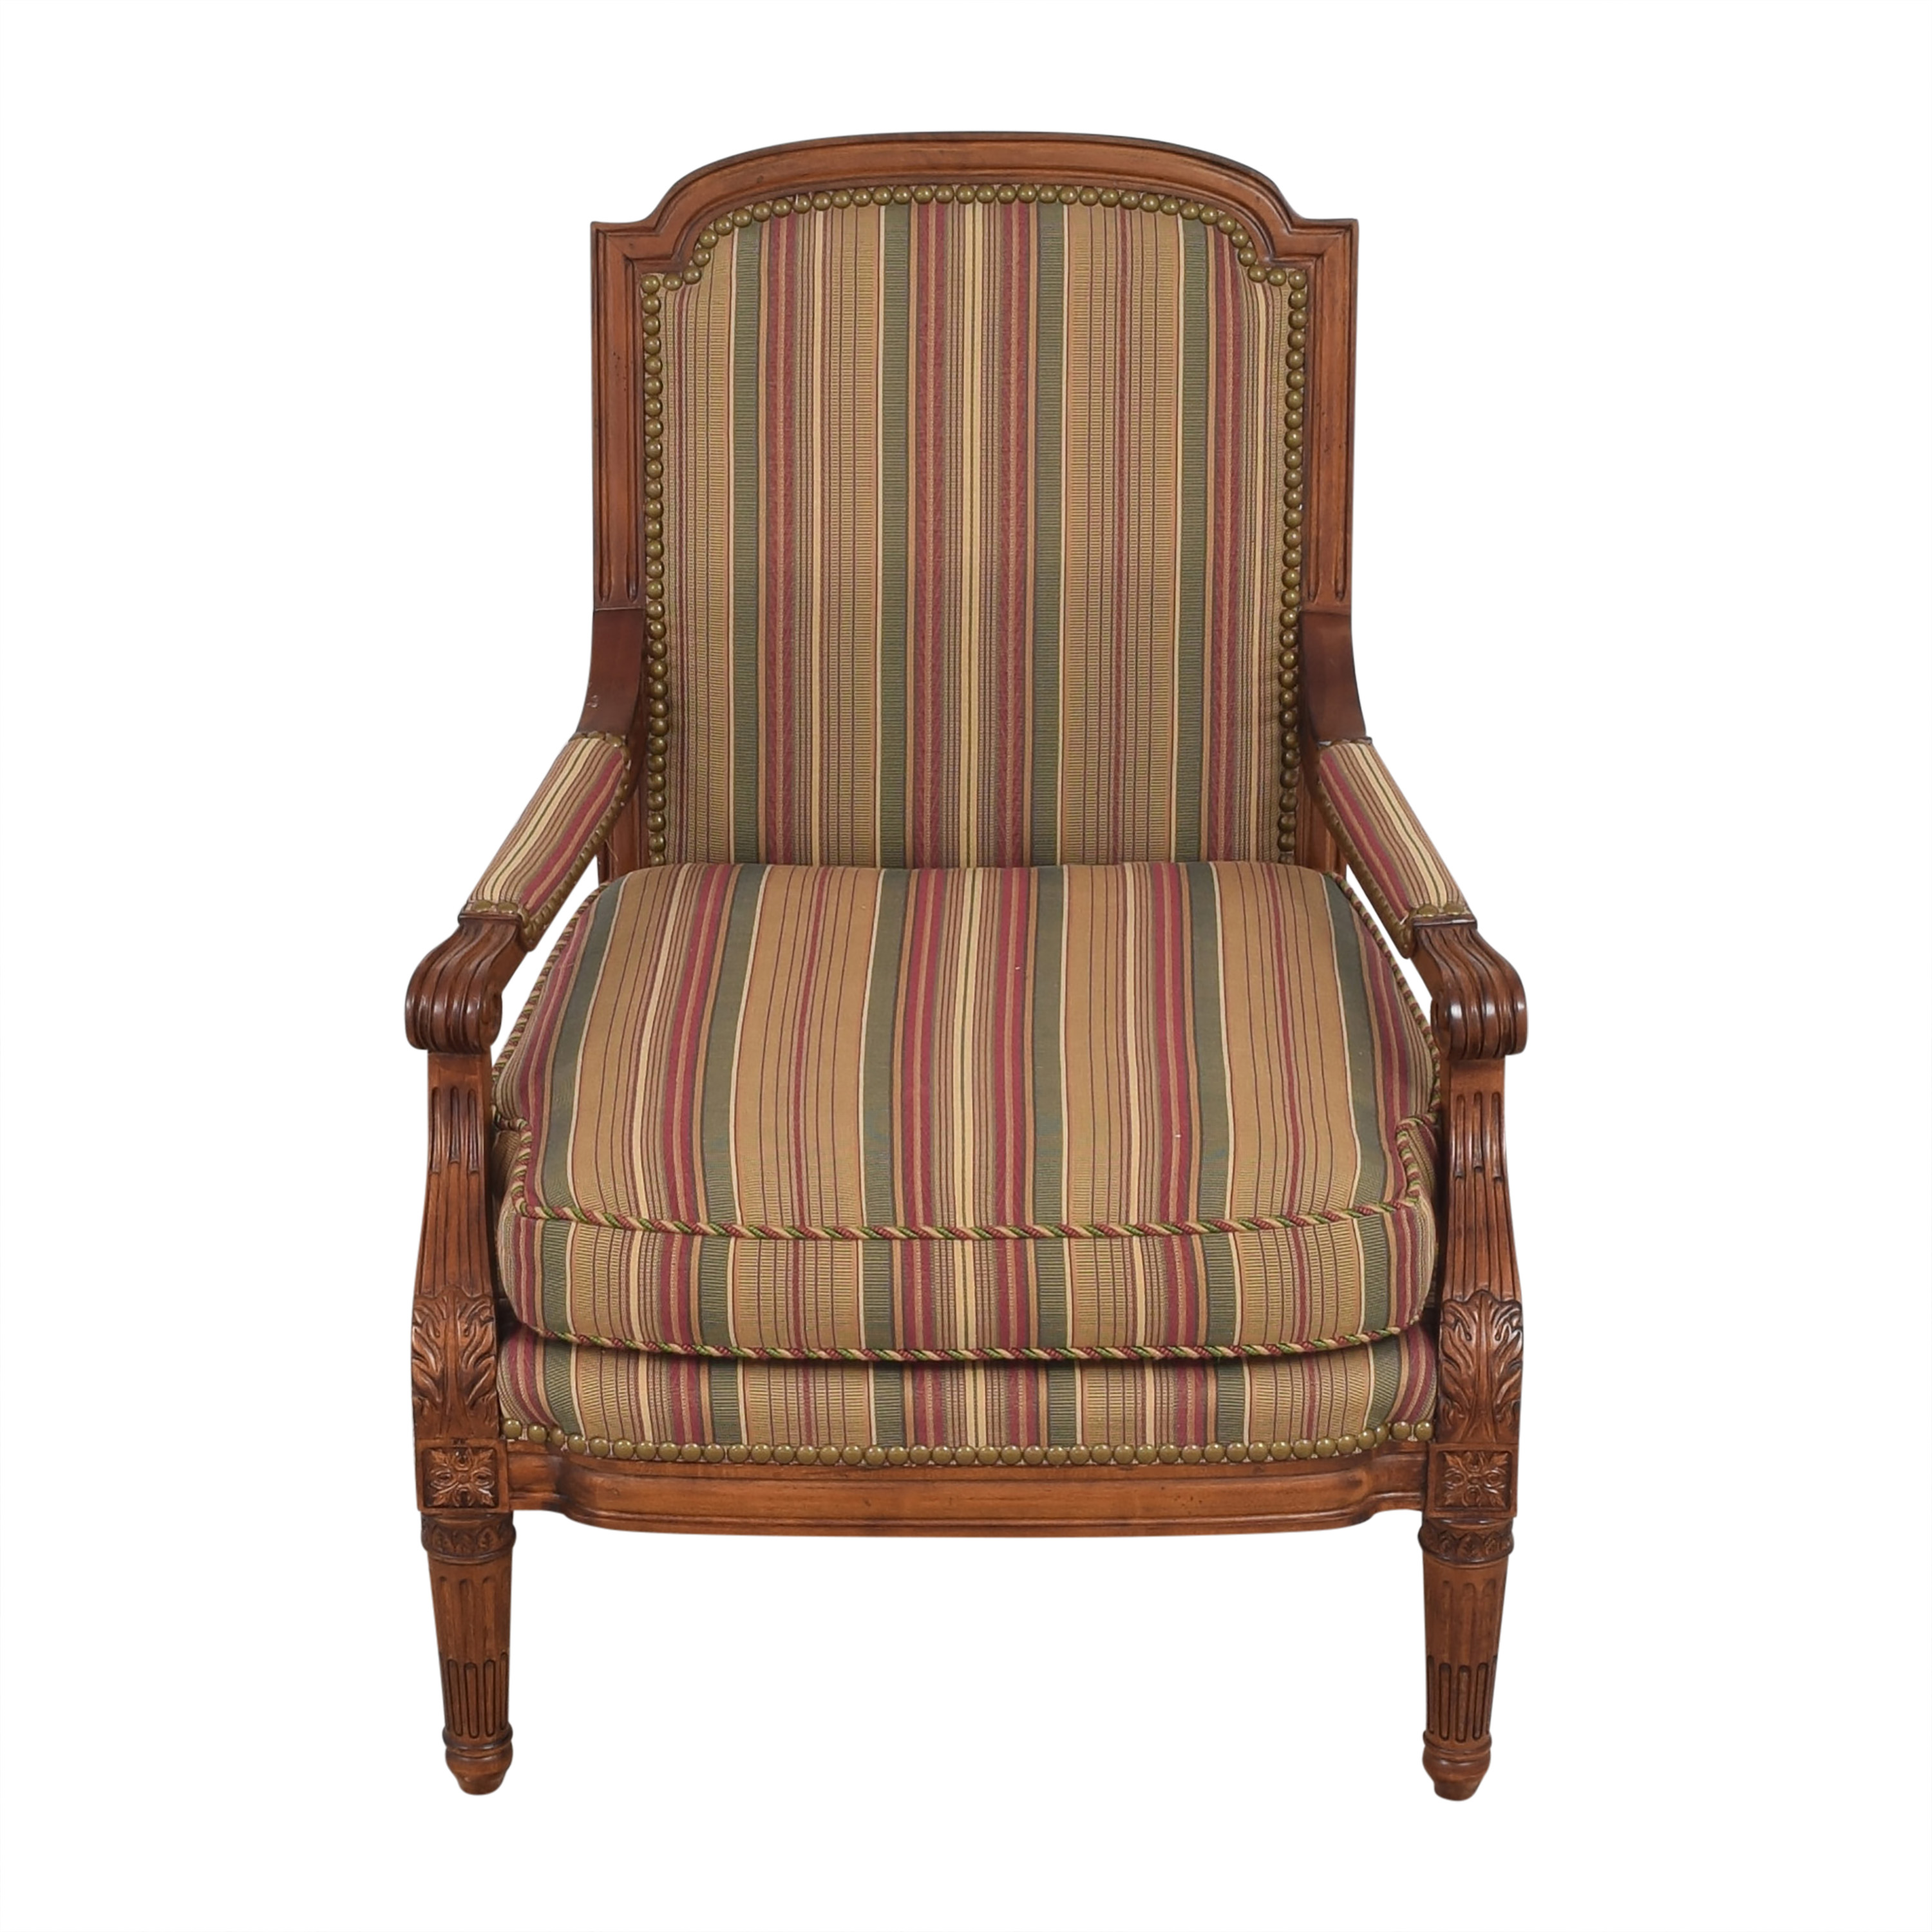 Century Furniture Striped Armchair / Chairs